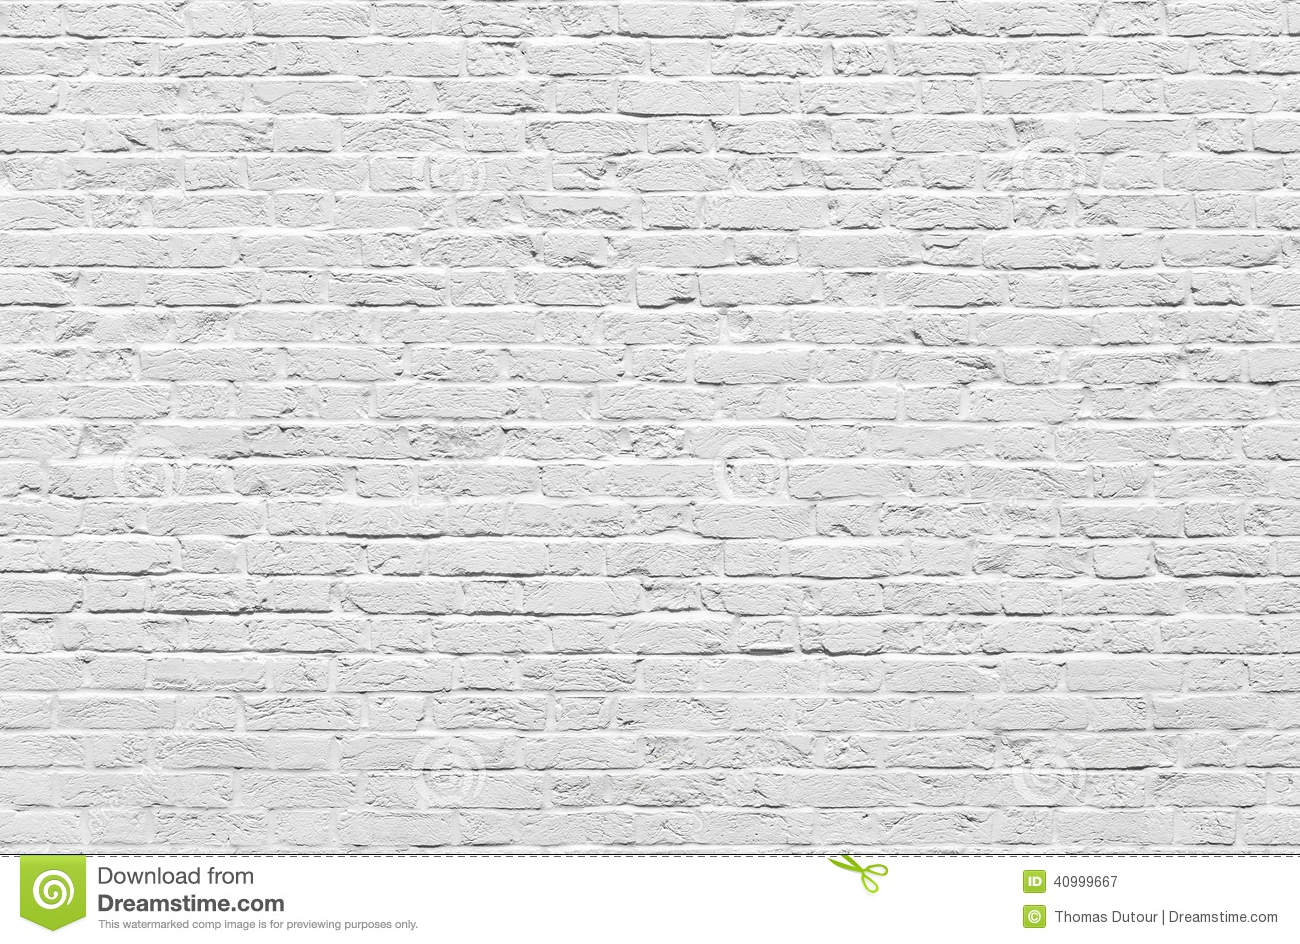 mur de briques blanc image stock image du abstrait conception 40999667. Black Bedroom Furniture Sets. Home Design Ideas